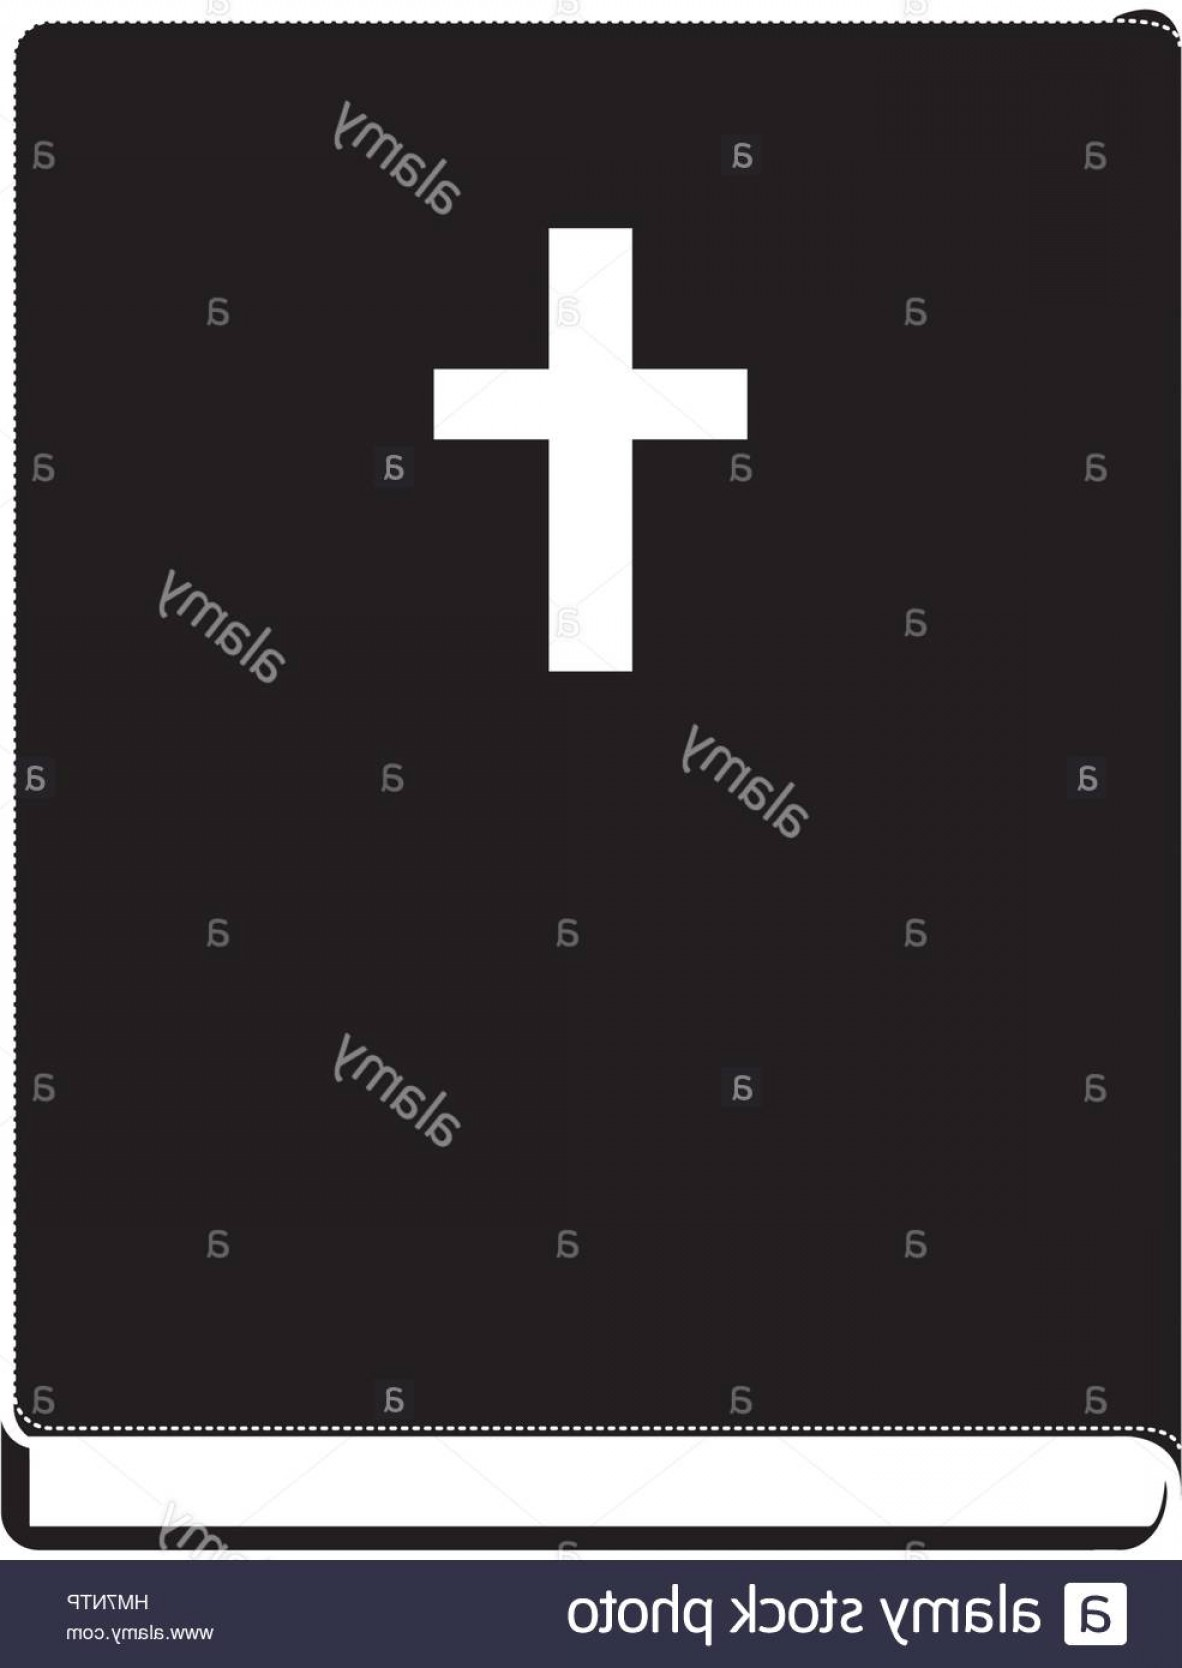 Holy Bible Vector: Stock Photo Monochrome Silhouette With Holy Bible Vector Illustration